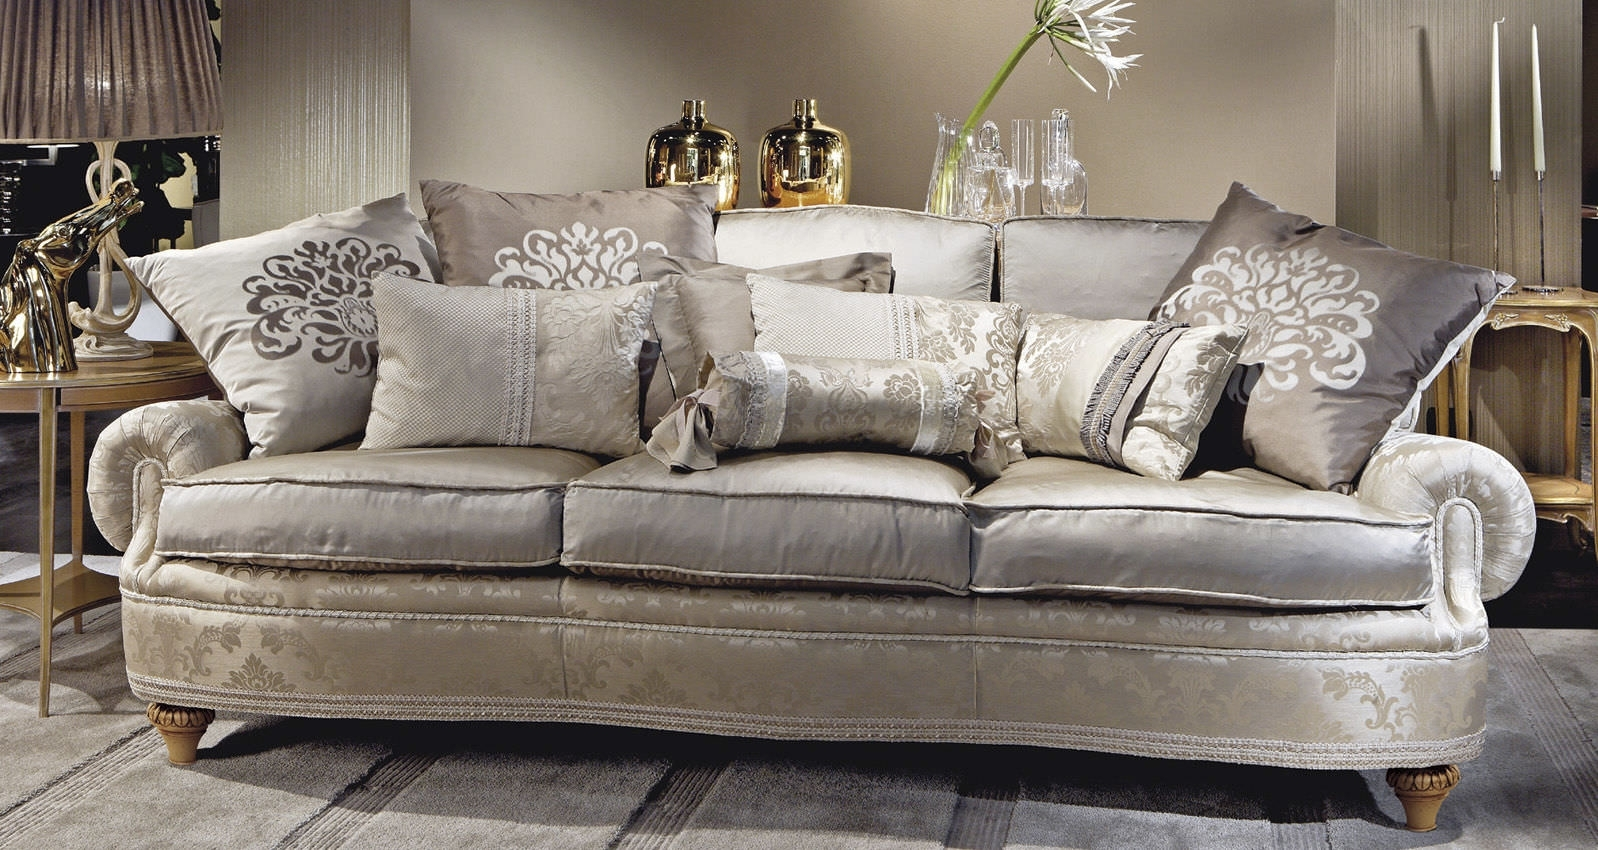 Epic Traditional Sofas 60 For Modern Sofa Inspiration With In Traditional Sofas (View 6 of 10)